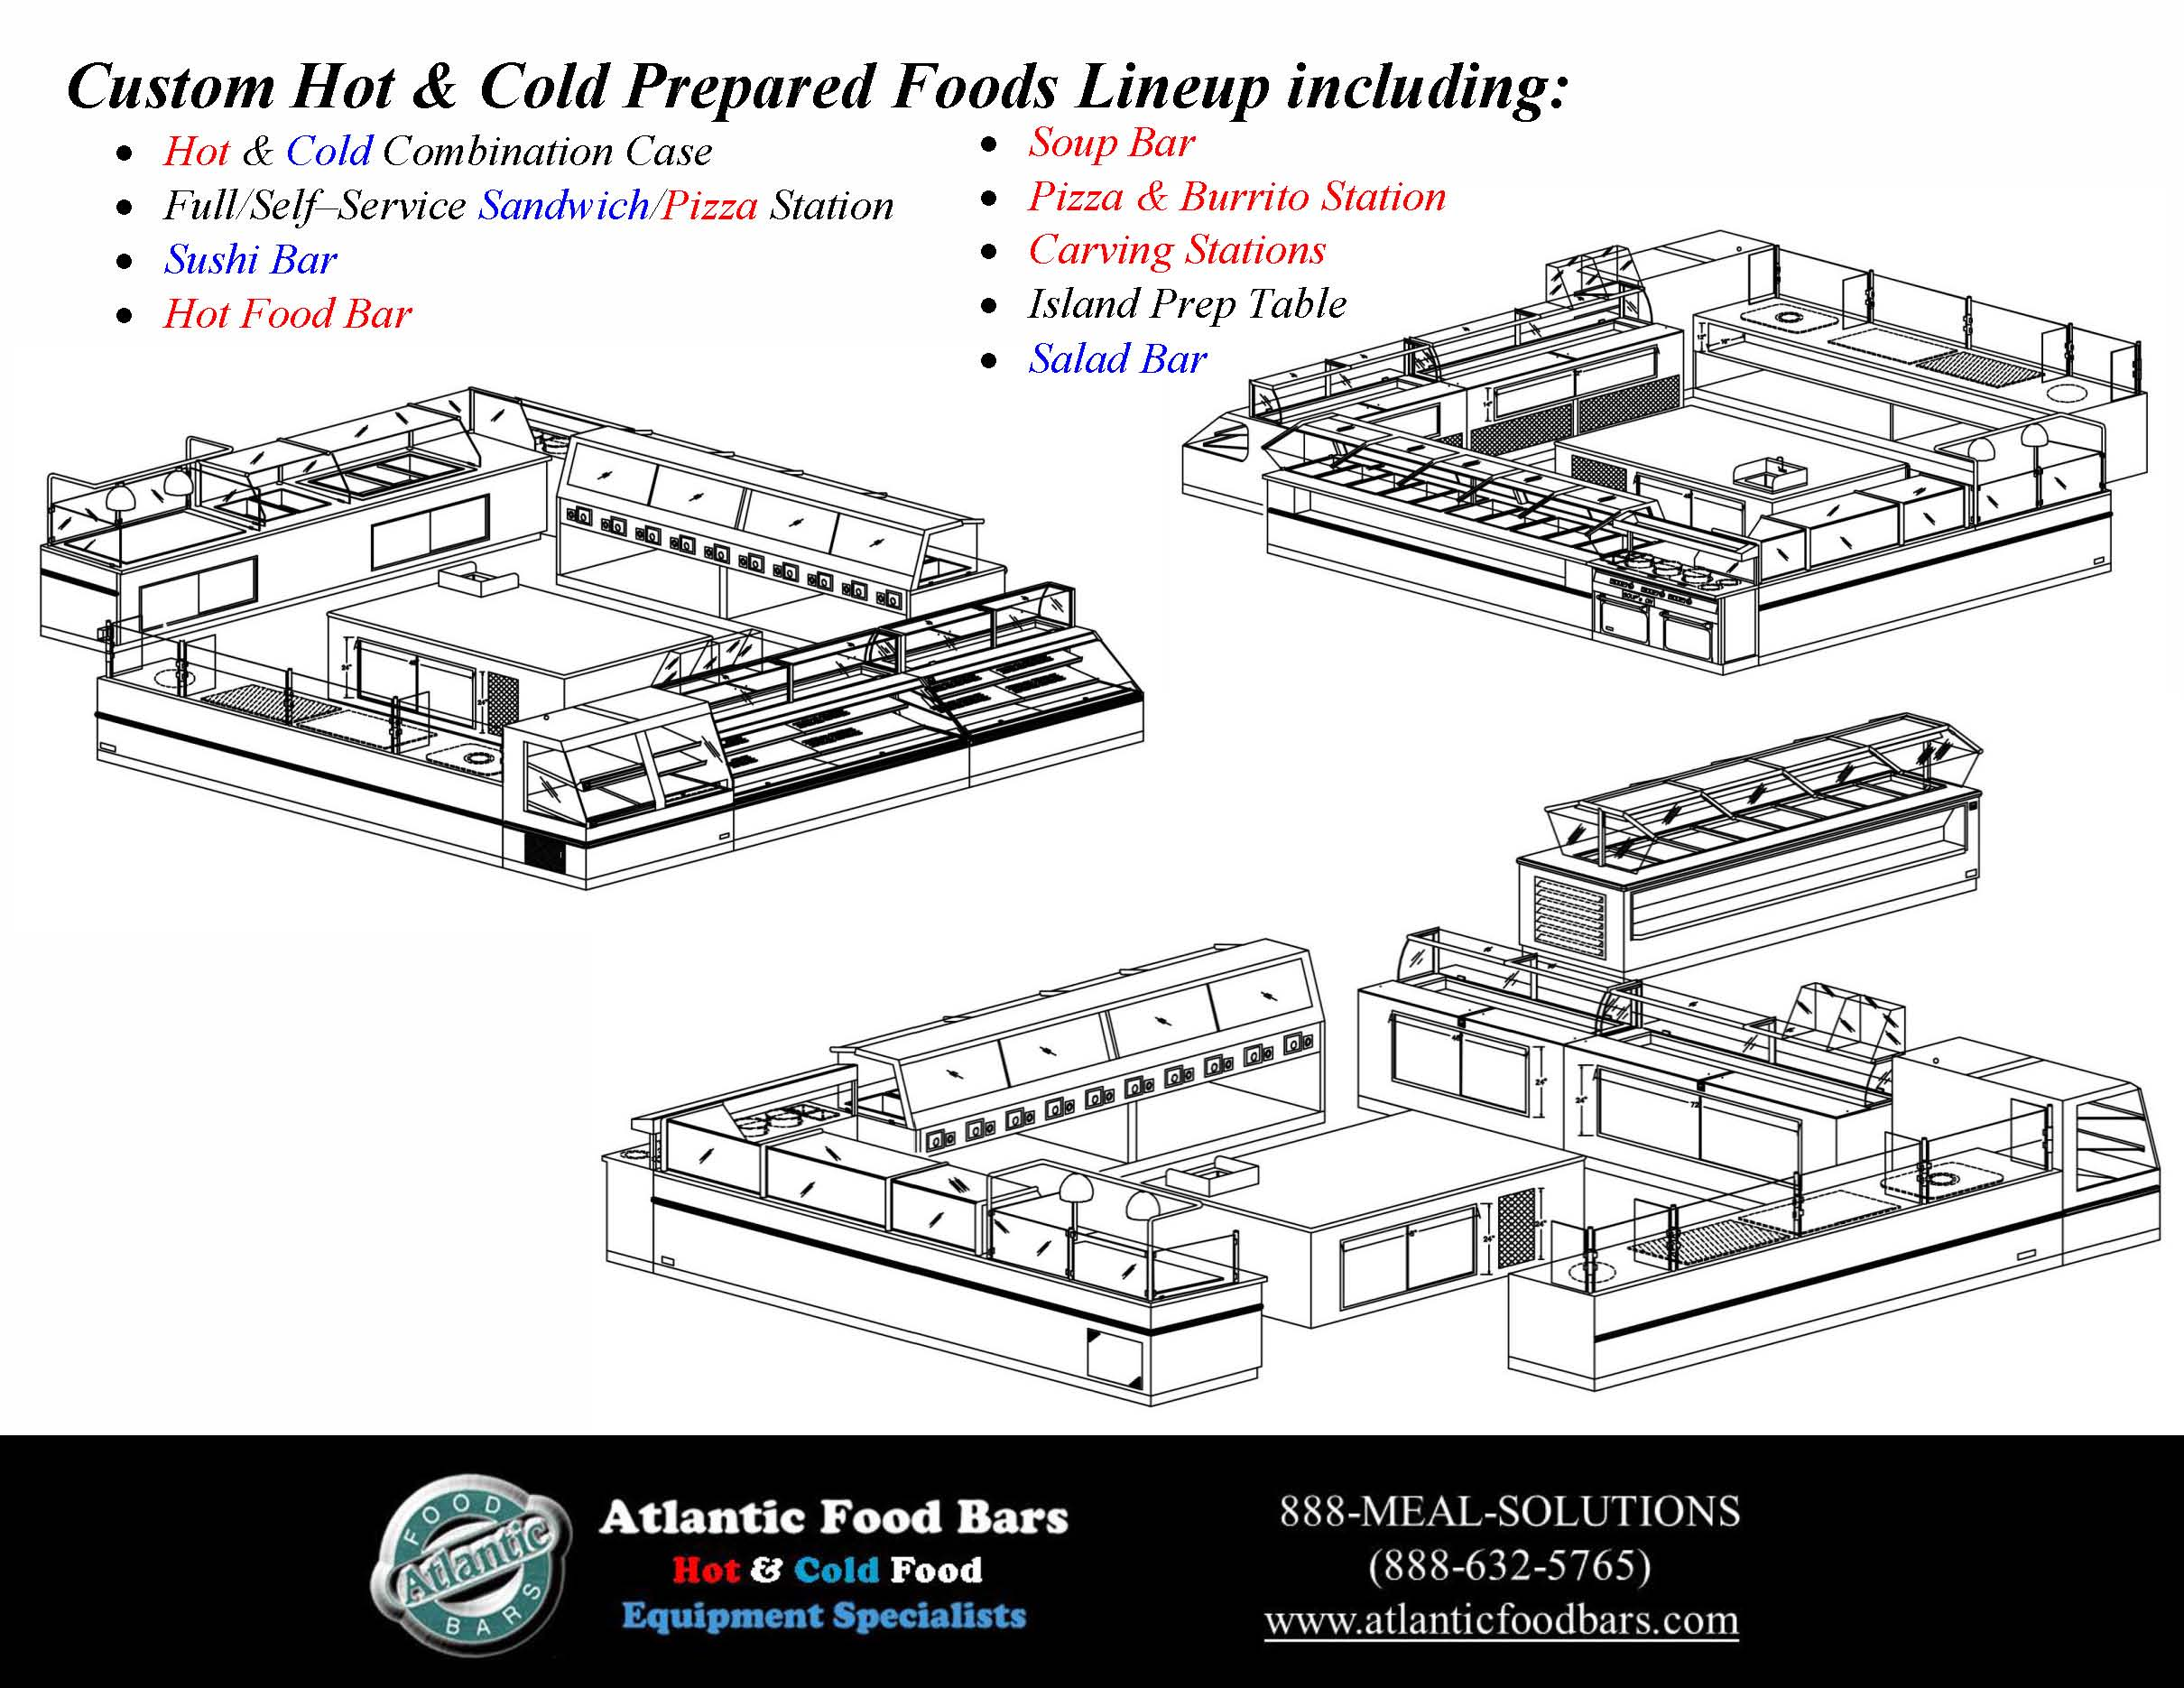 Atlantic Food Bars - Custom Hot and Cold Prepared Foods Lineup with Hot and Cold, Sandwich, Pizza, Burrito, Carving Station, Prep Table, Salad, Sushi, Soup